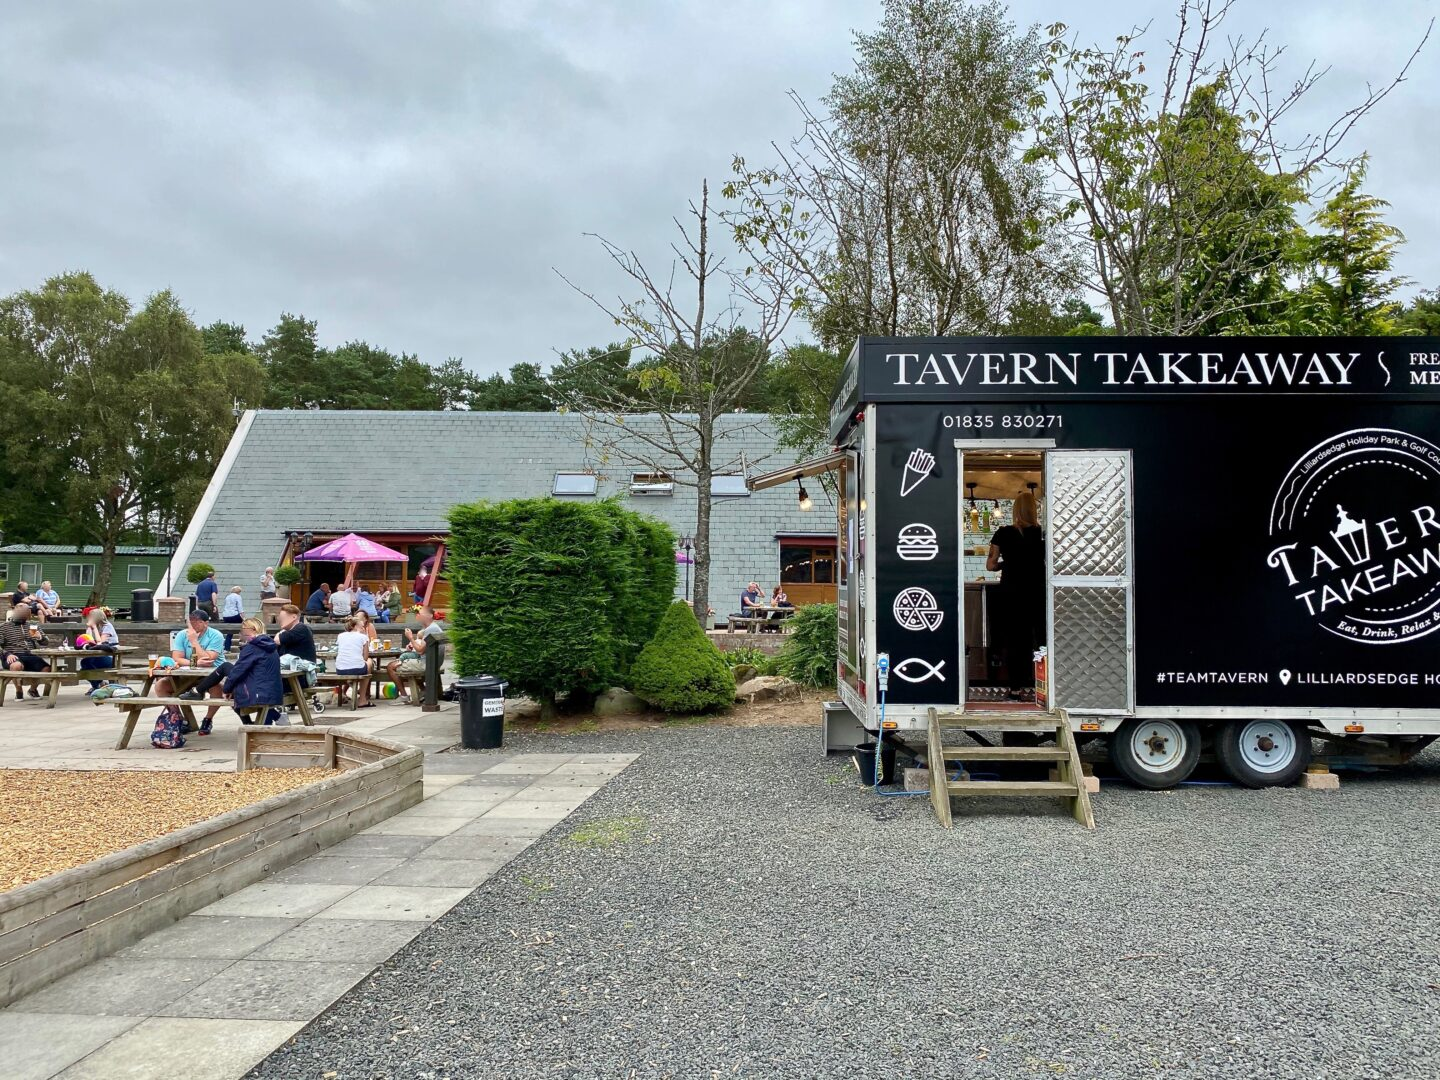 A takeaway truck and picnic tables